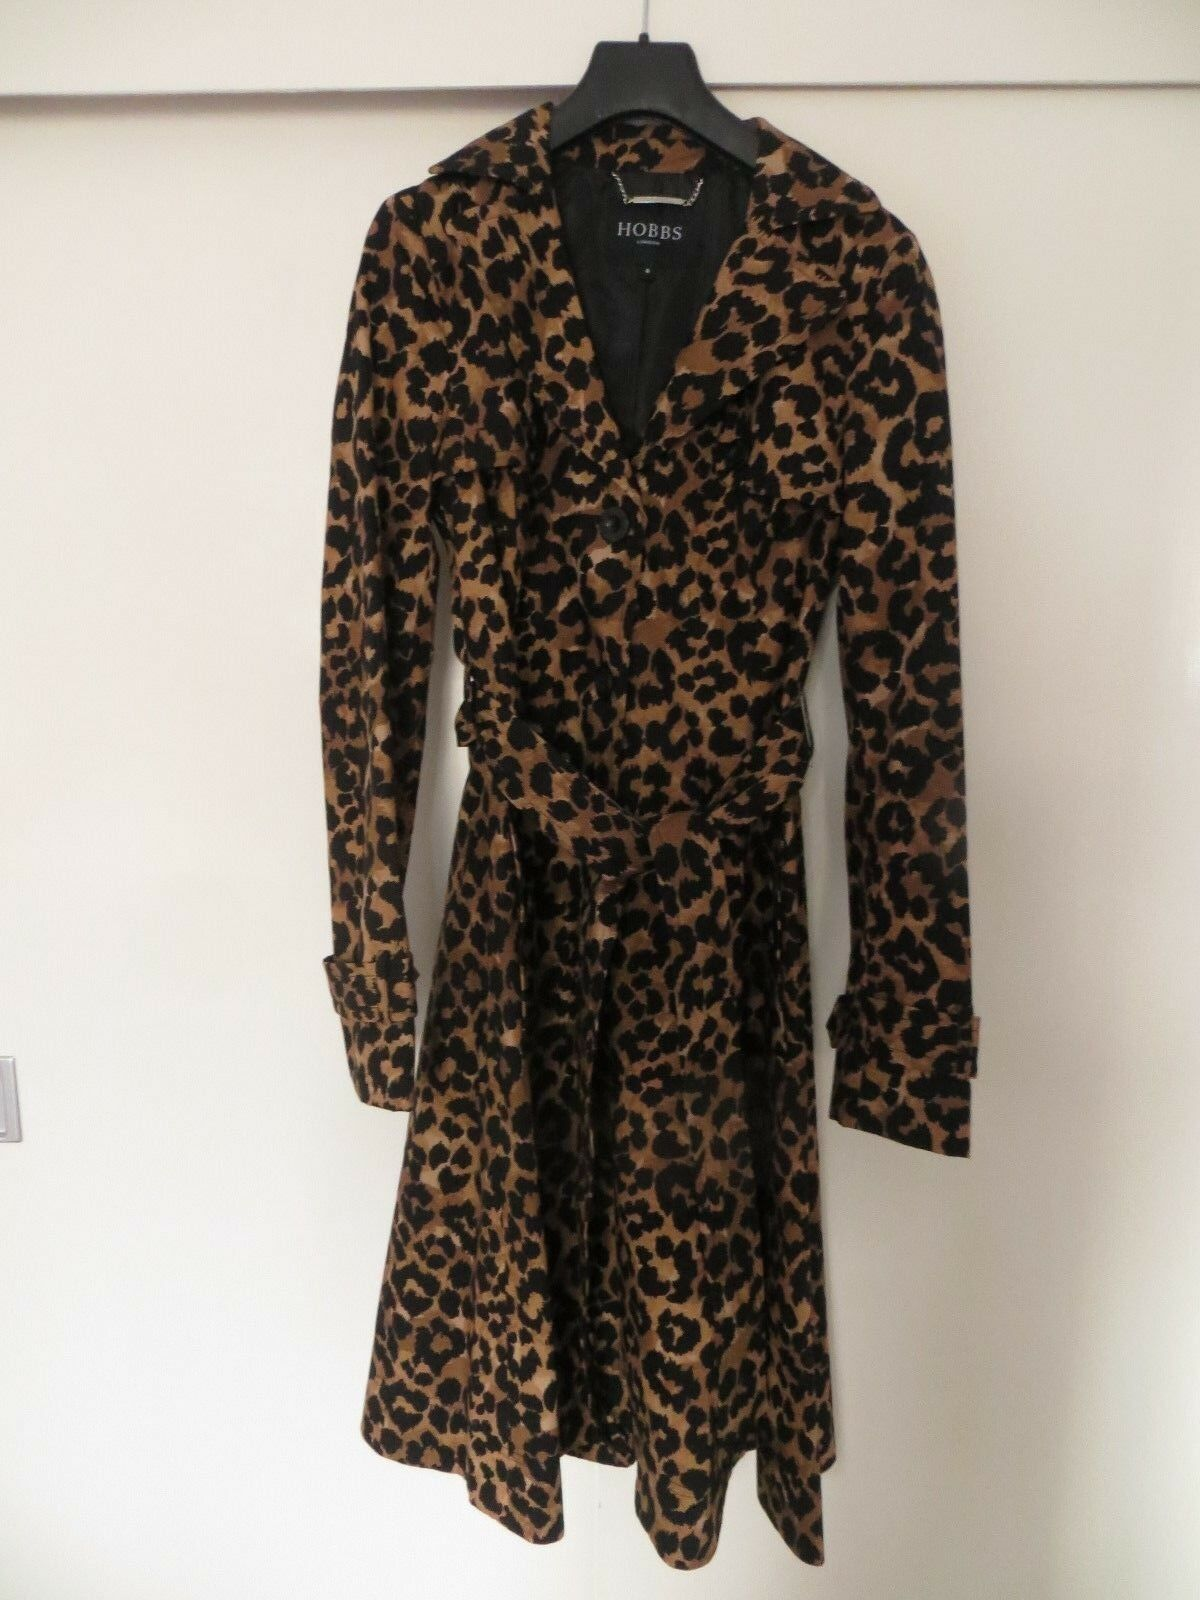 BN Hobbs Leopard Animal Print Cotton Single Breasted Mac+belt Storm Flaps Sz 8